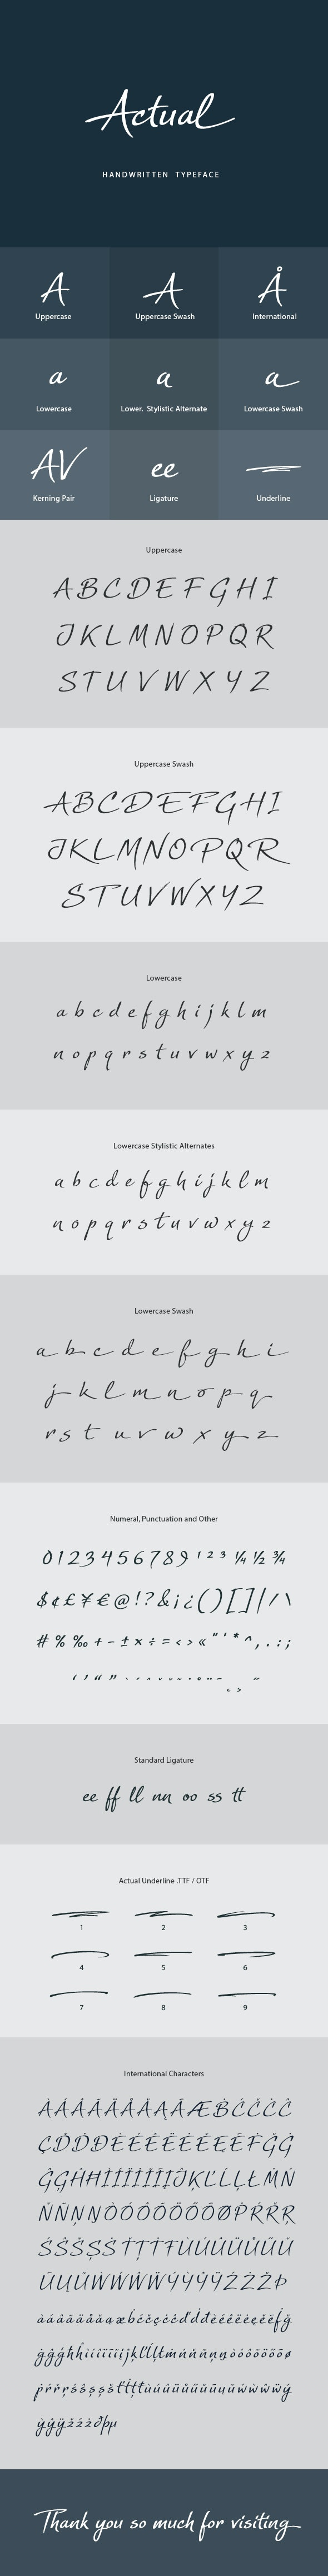 Actual Handwritten Font - Handwriting Fonts